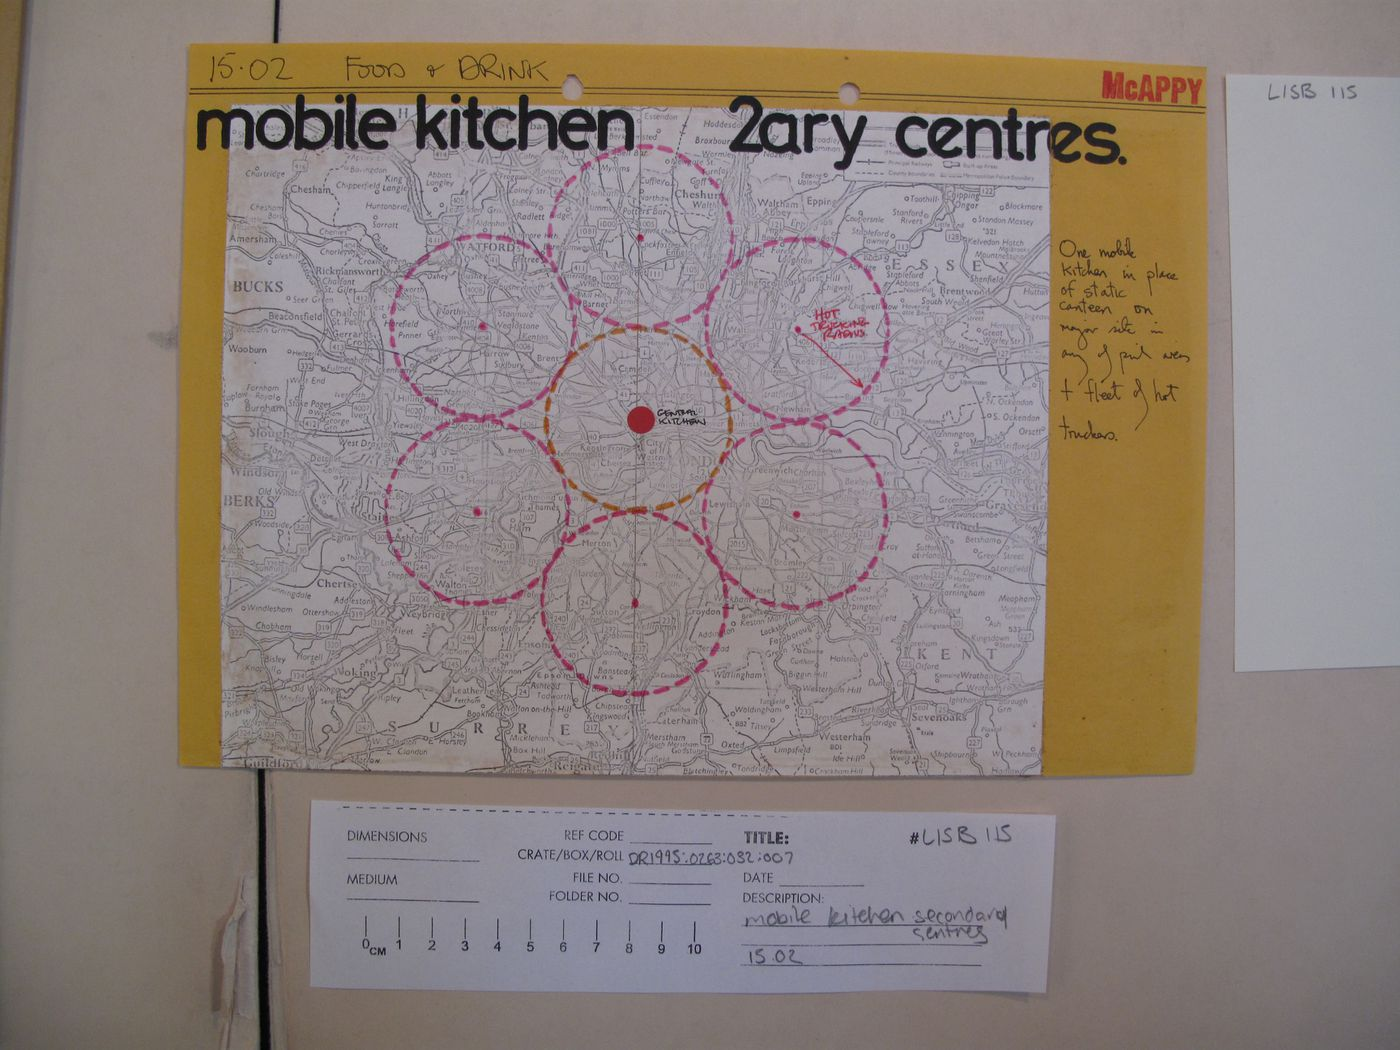 McAppy: map of London area showing mobile kitchen secondary centres